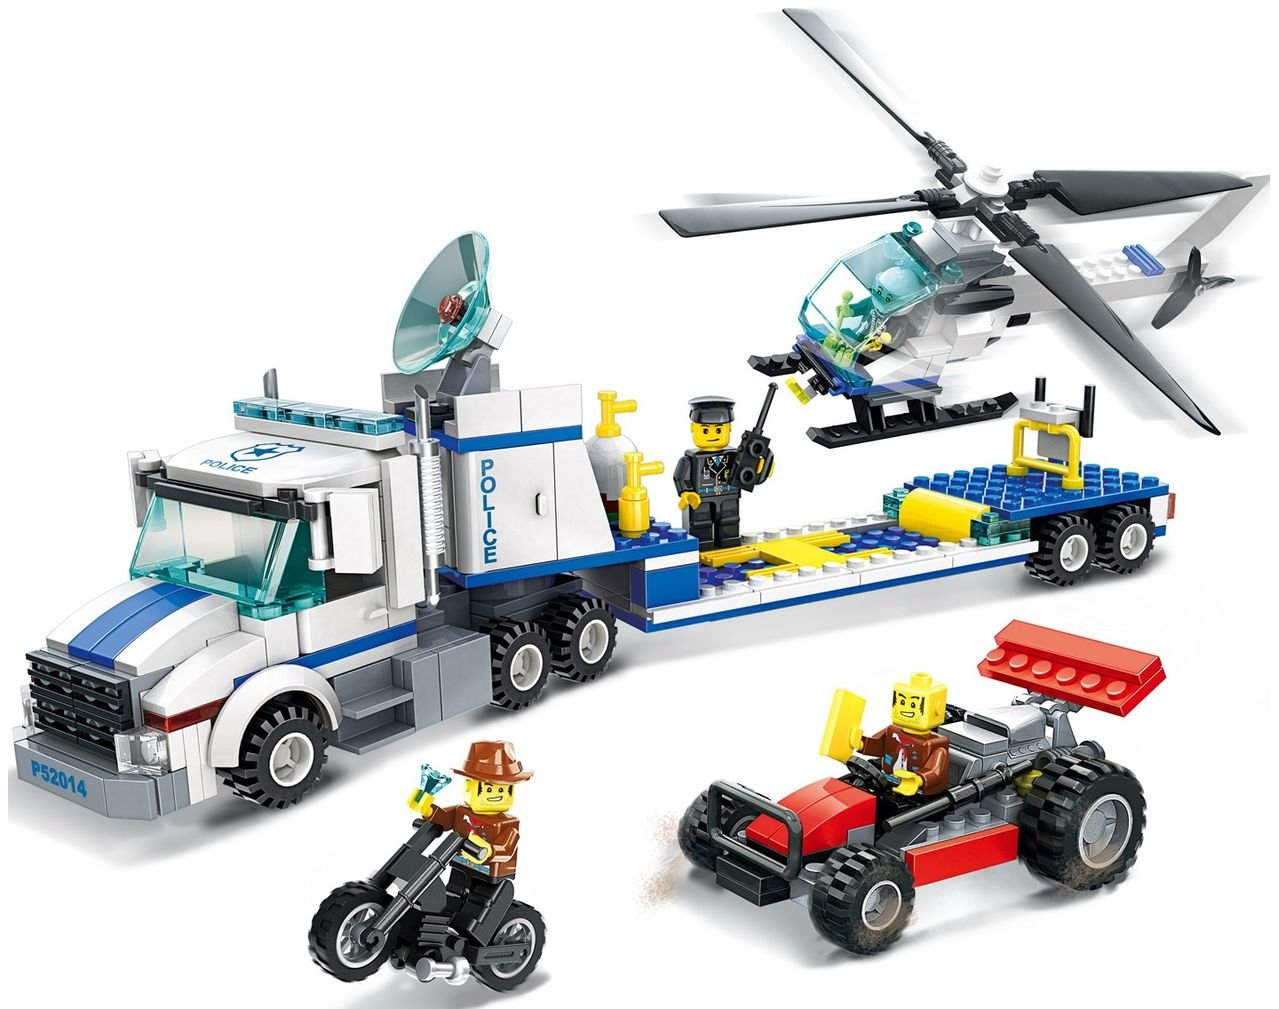 police building brick truck transporter for police search and rescue helicopter toy 393pcs play set - building block Compatible To Other Brands - Great Gift for children